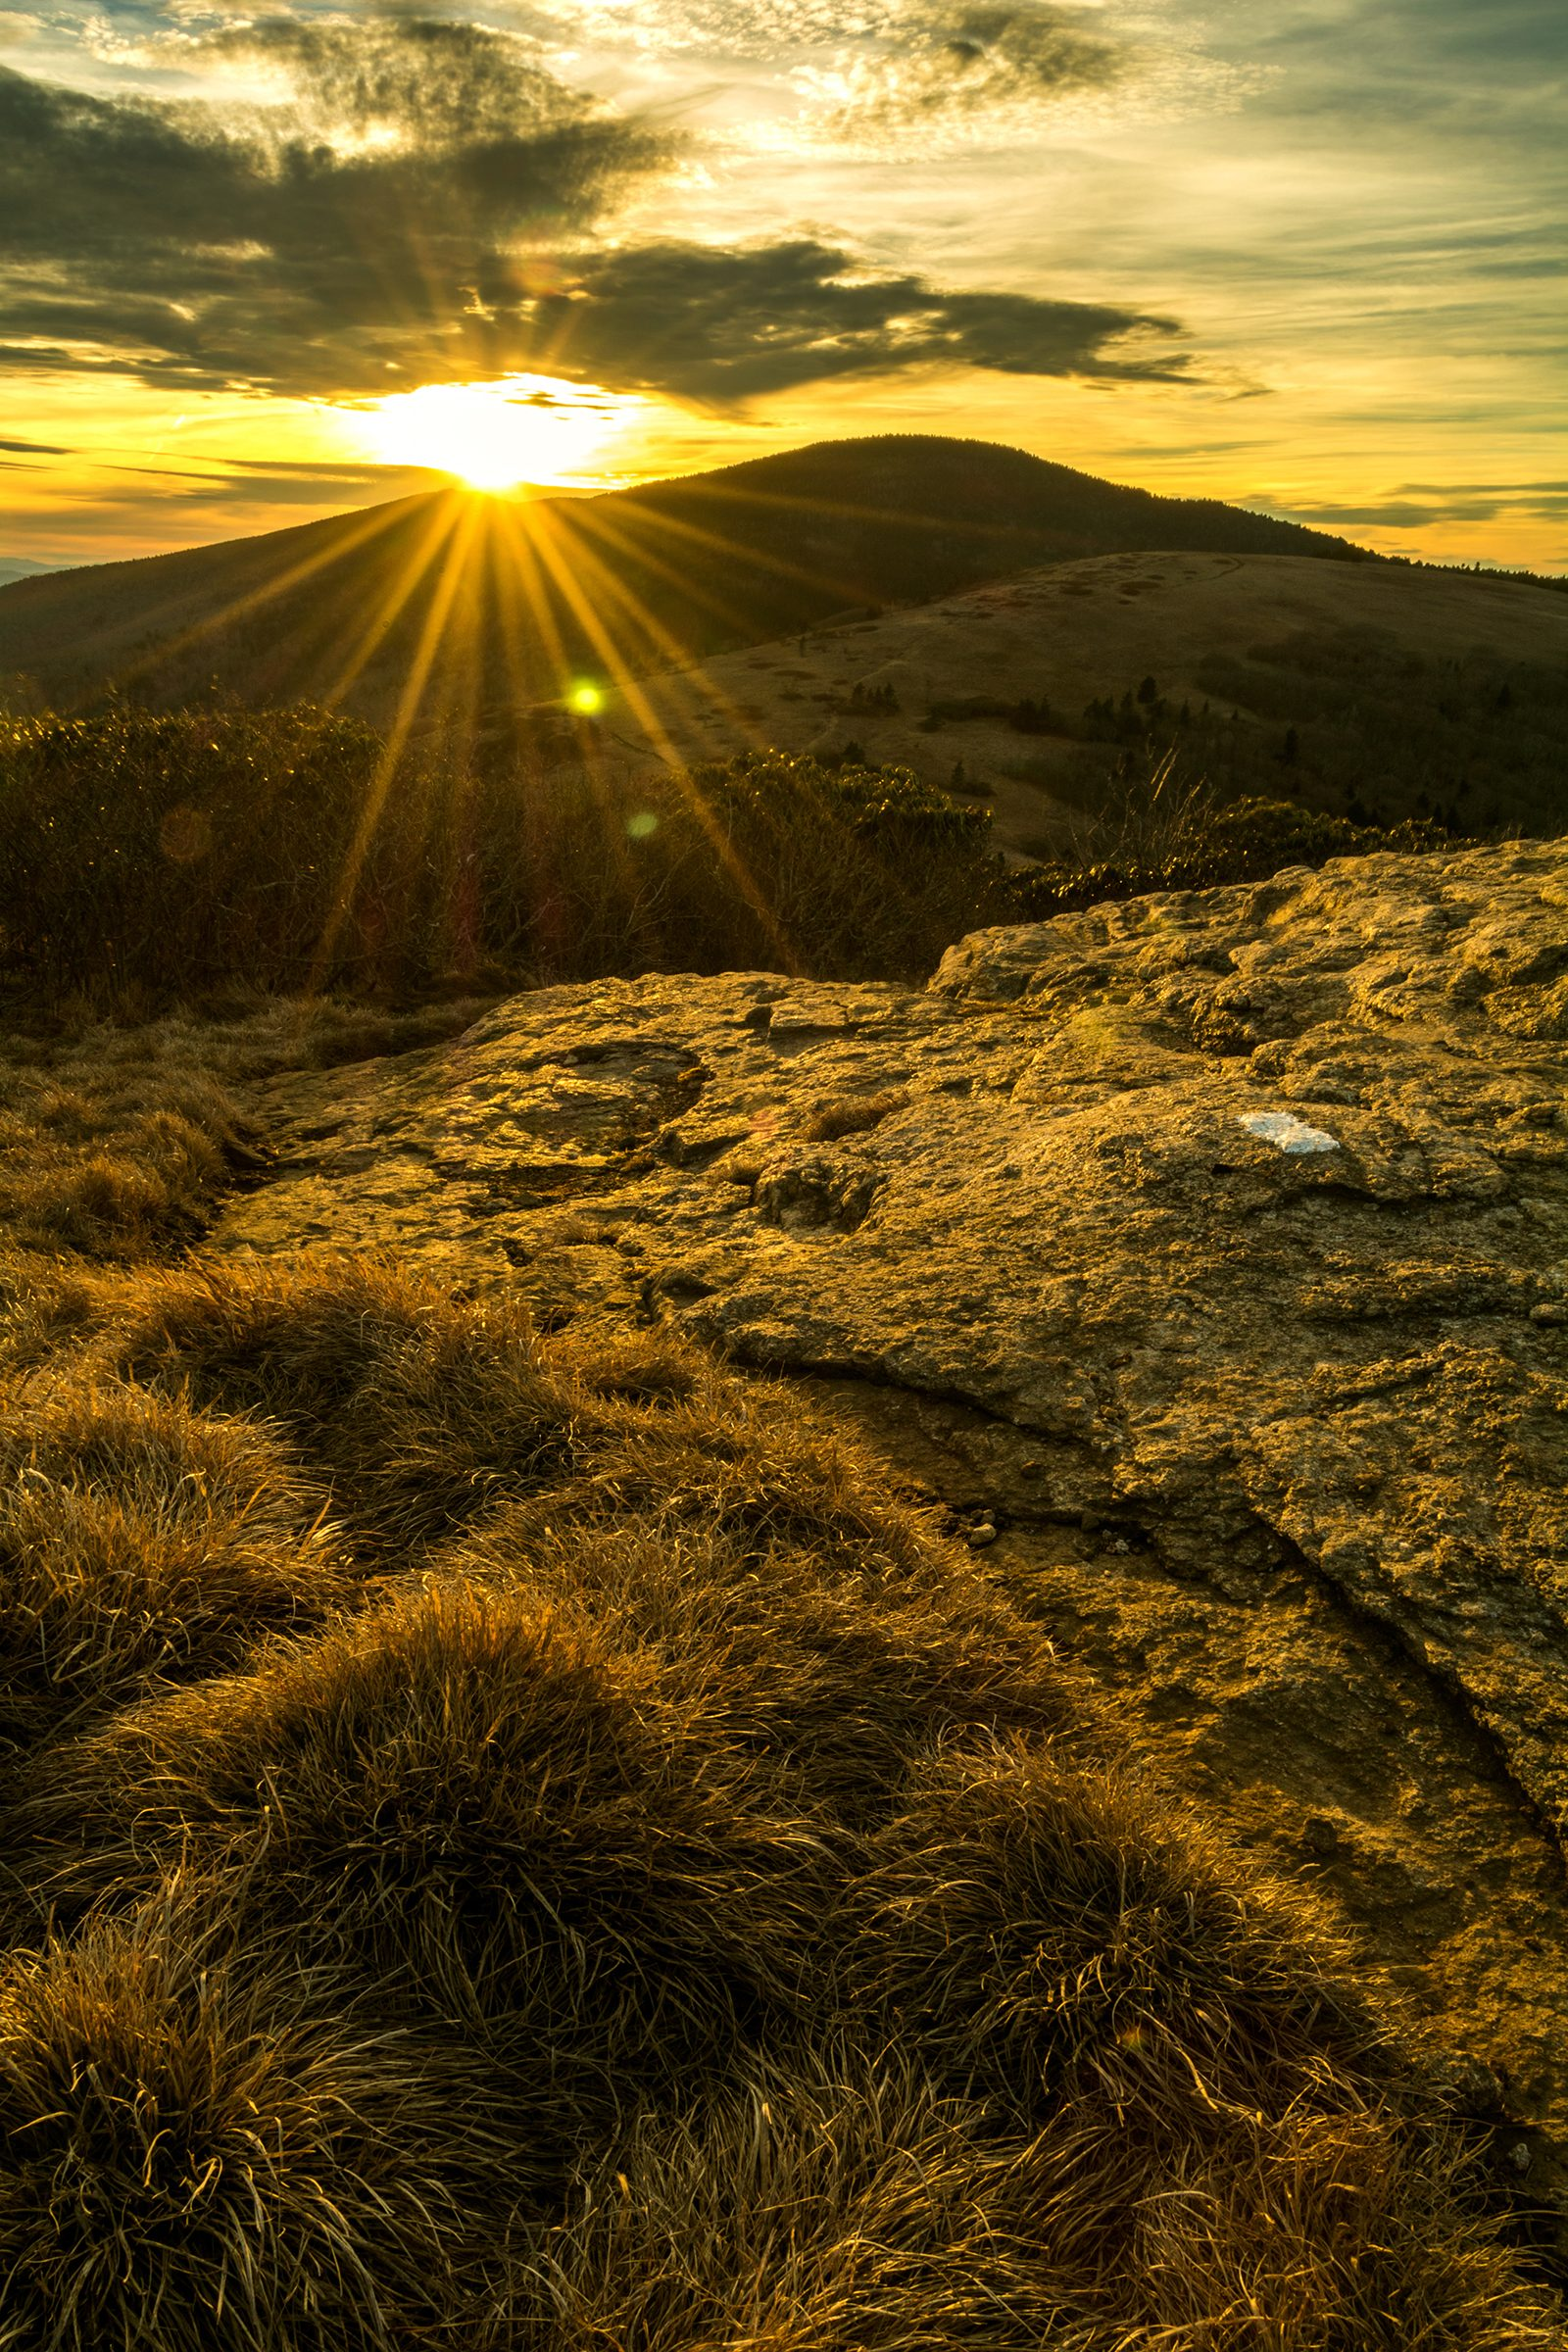 Sunset Over Roan Mountain from the Appalachian Trail